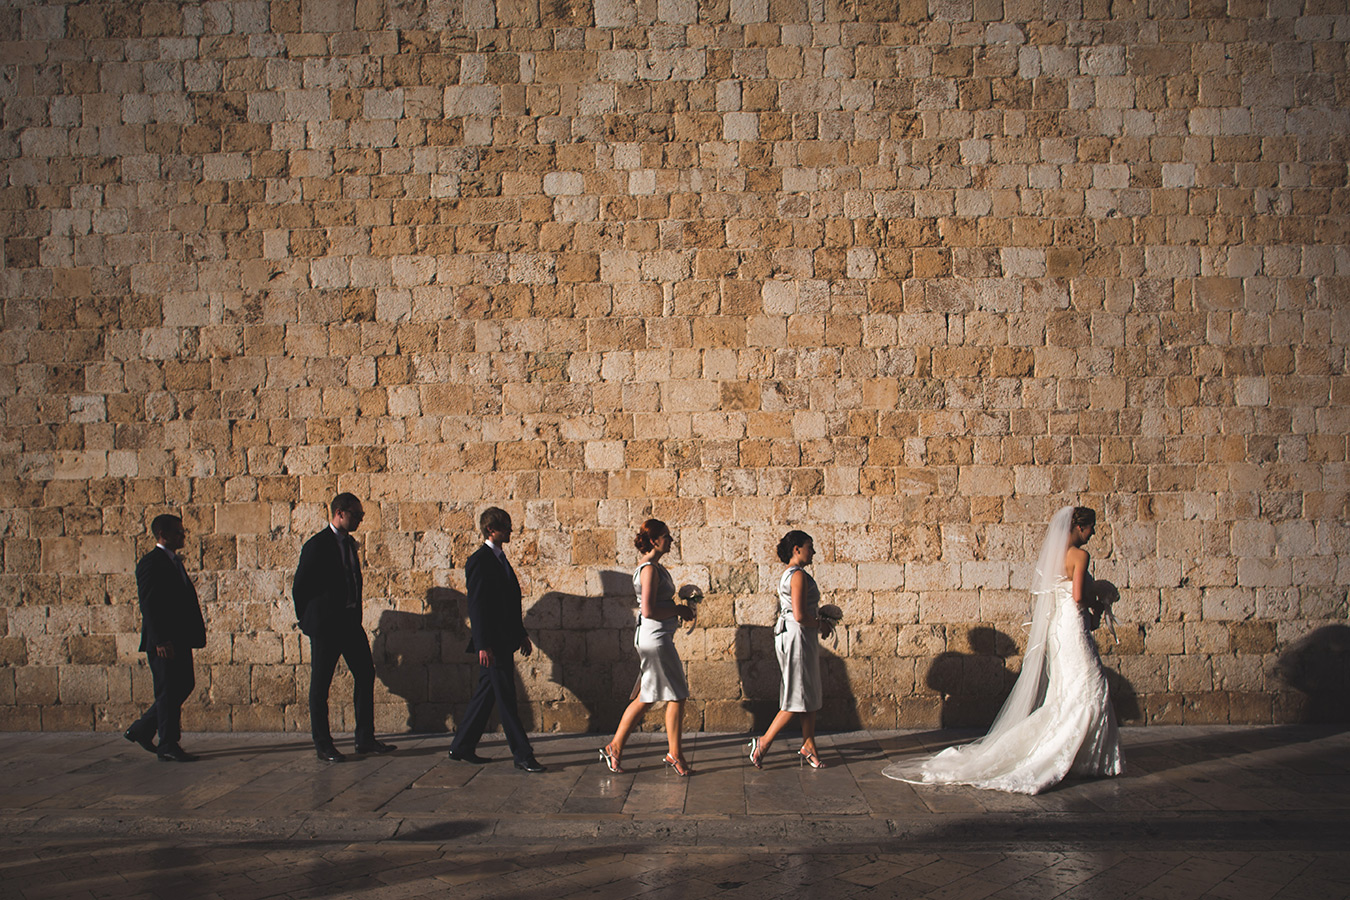 One of a set of images taken at this chic destination Wedding of Jenna & Nick. The stylish old town of Dubrovnik, Croatia.  The Bride and Bridesmaids walk down the street. Photography by Matt Porteous